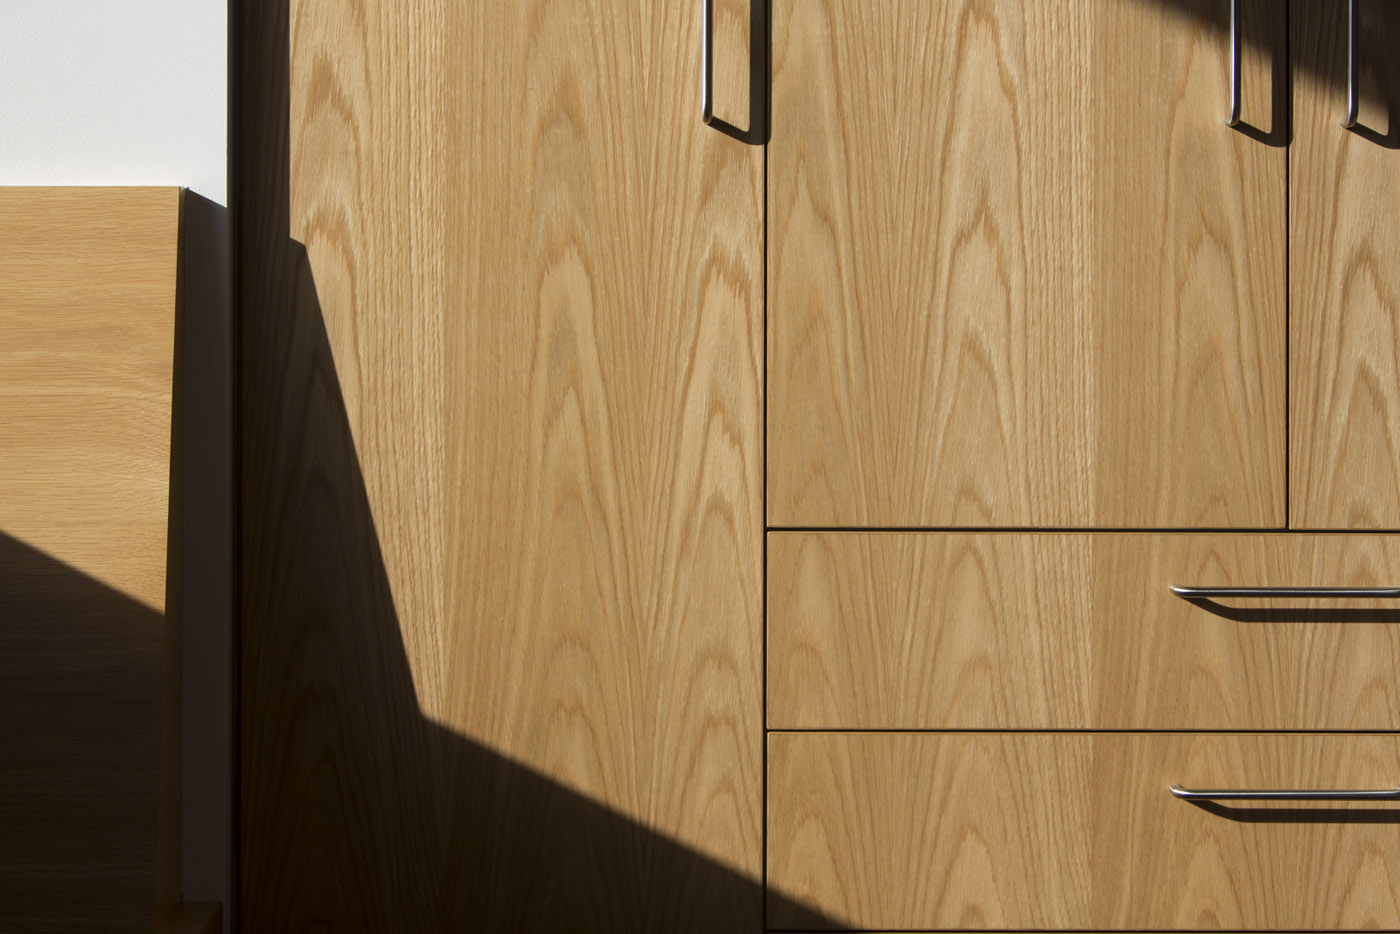 Gandha Kariappa Terrace by Sydney residential architects Sam Crawford Architects. Beautiful wood grained joinery with stainless steel handles